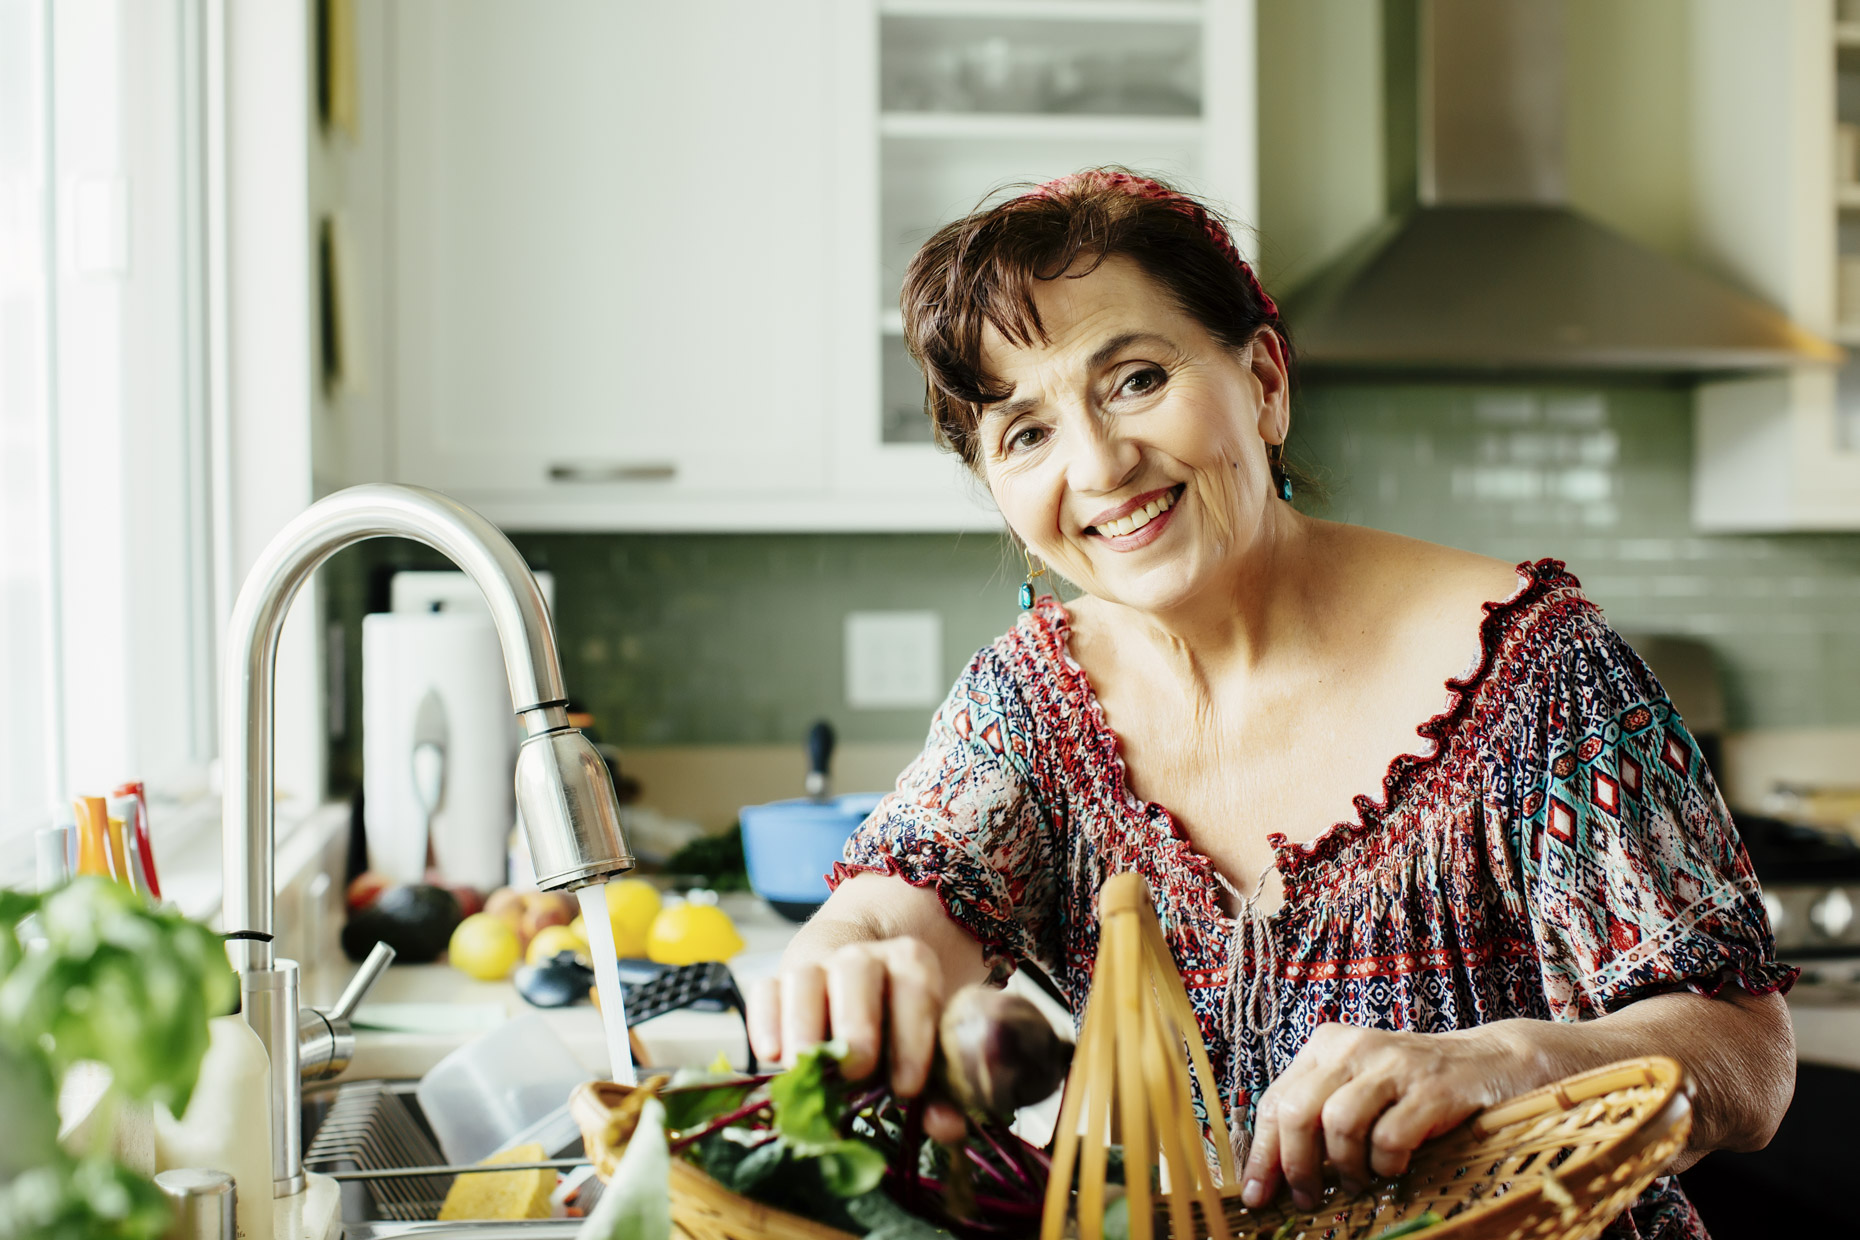 Smiling senior latinx woman in kitchen with vegetable basket